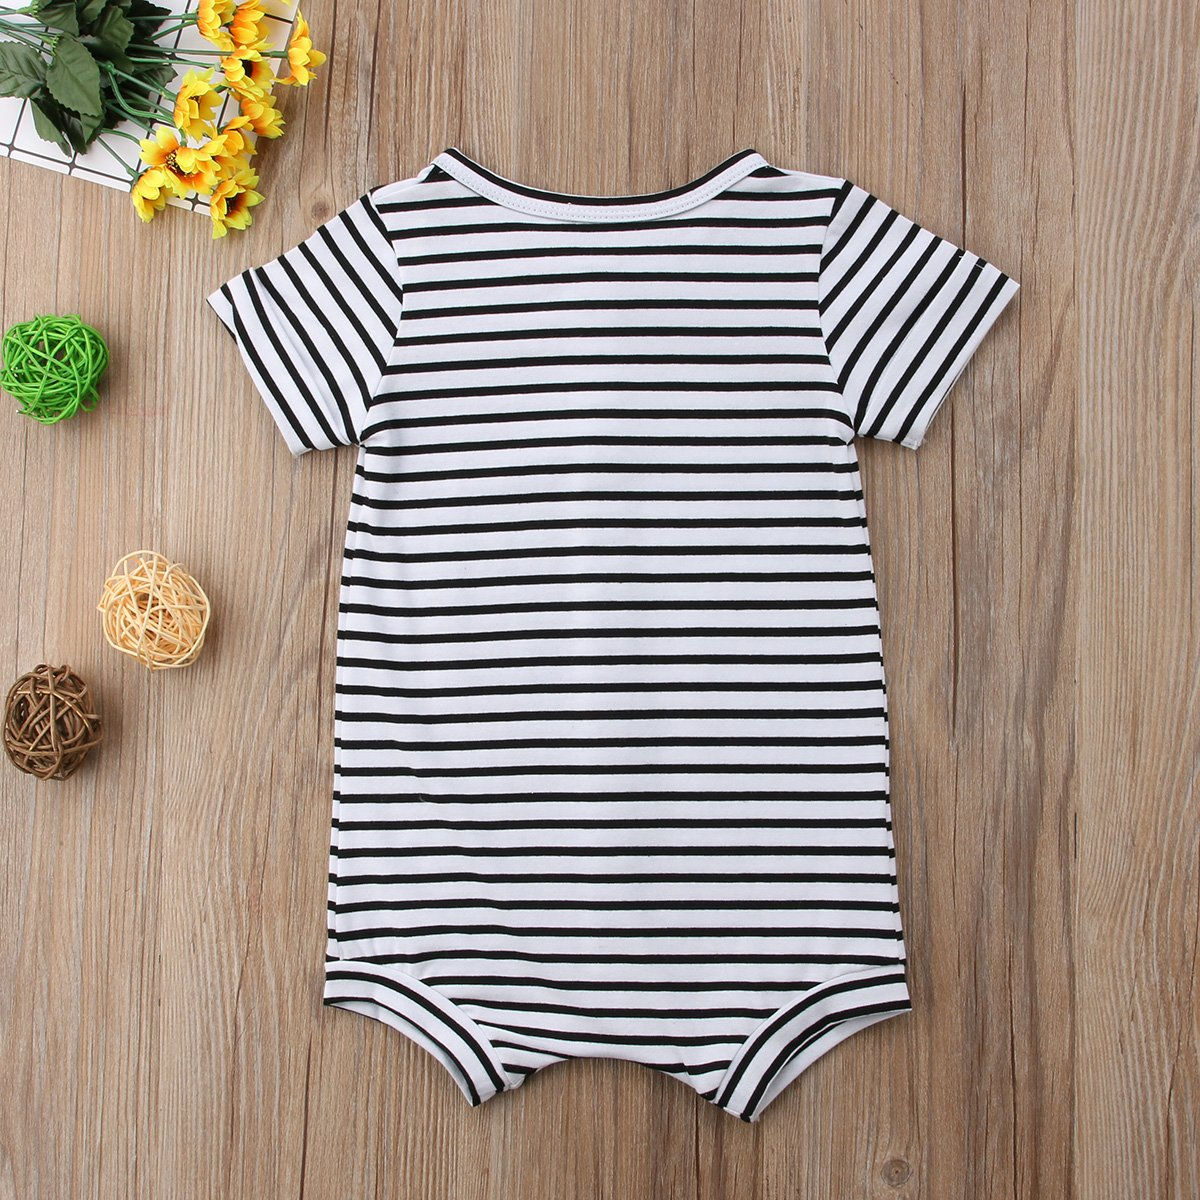 Urkutoba Baby Girls Romper Knitted Ruffle Long Sleeve Jumpsuit Baby Kids Girl Romper Autumn Winter Casual Clothing (0-6 Months, Striped&Buttons) by Urkutoba (Image #7)